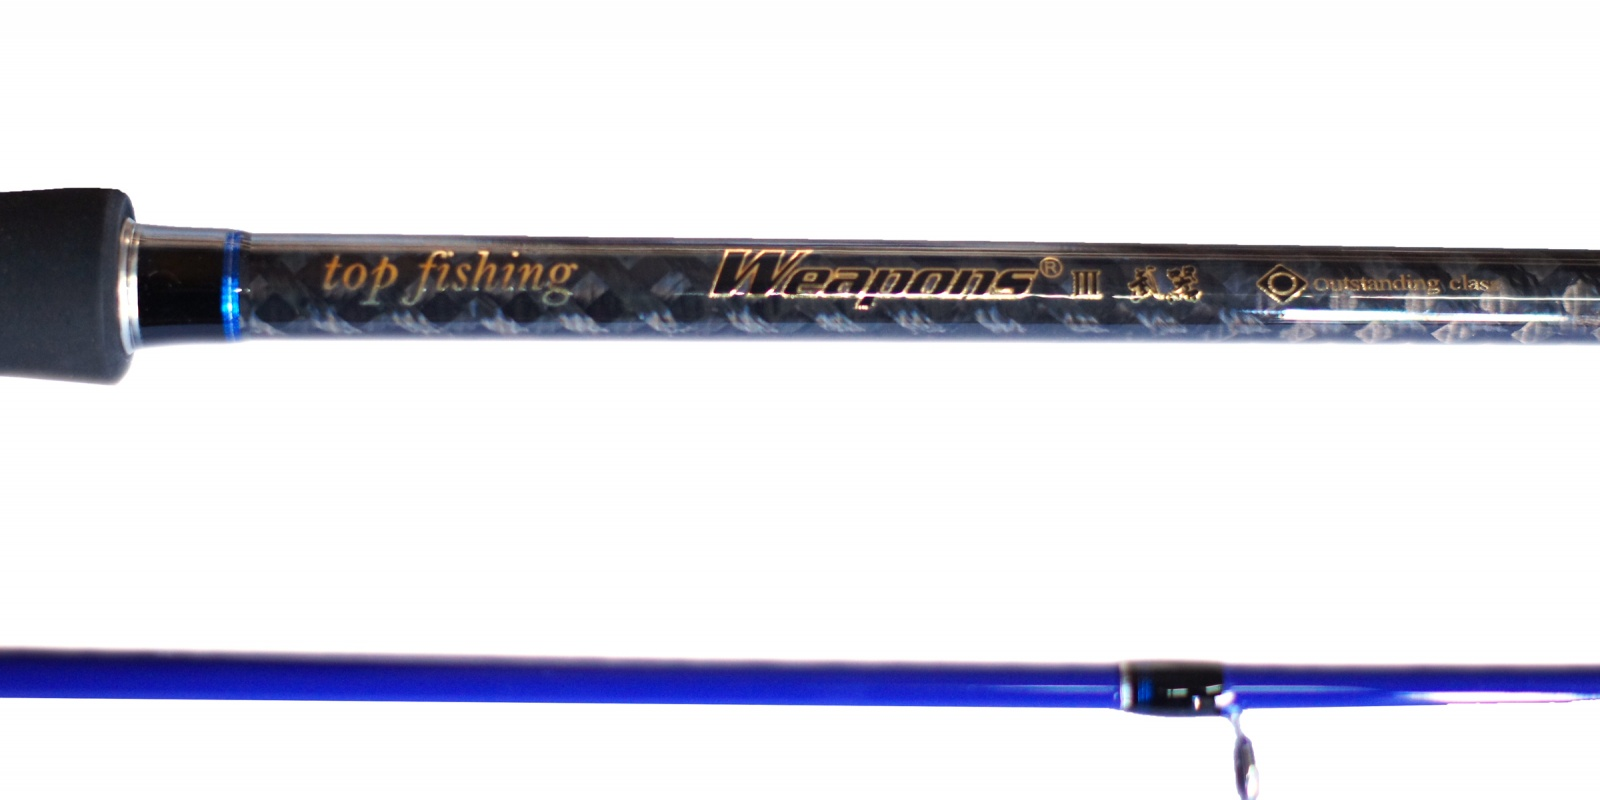 La Canne Top Fishing Weapons